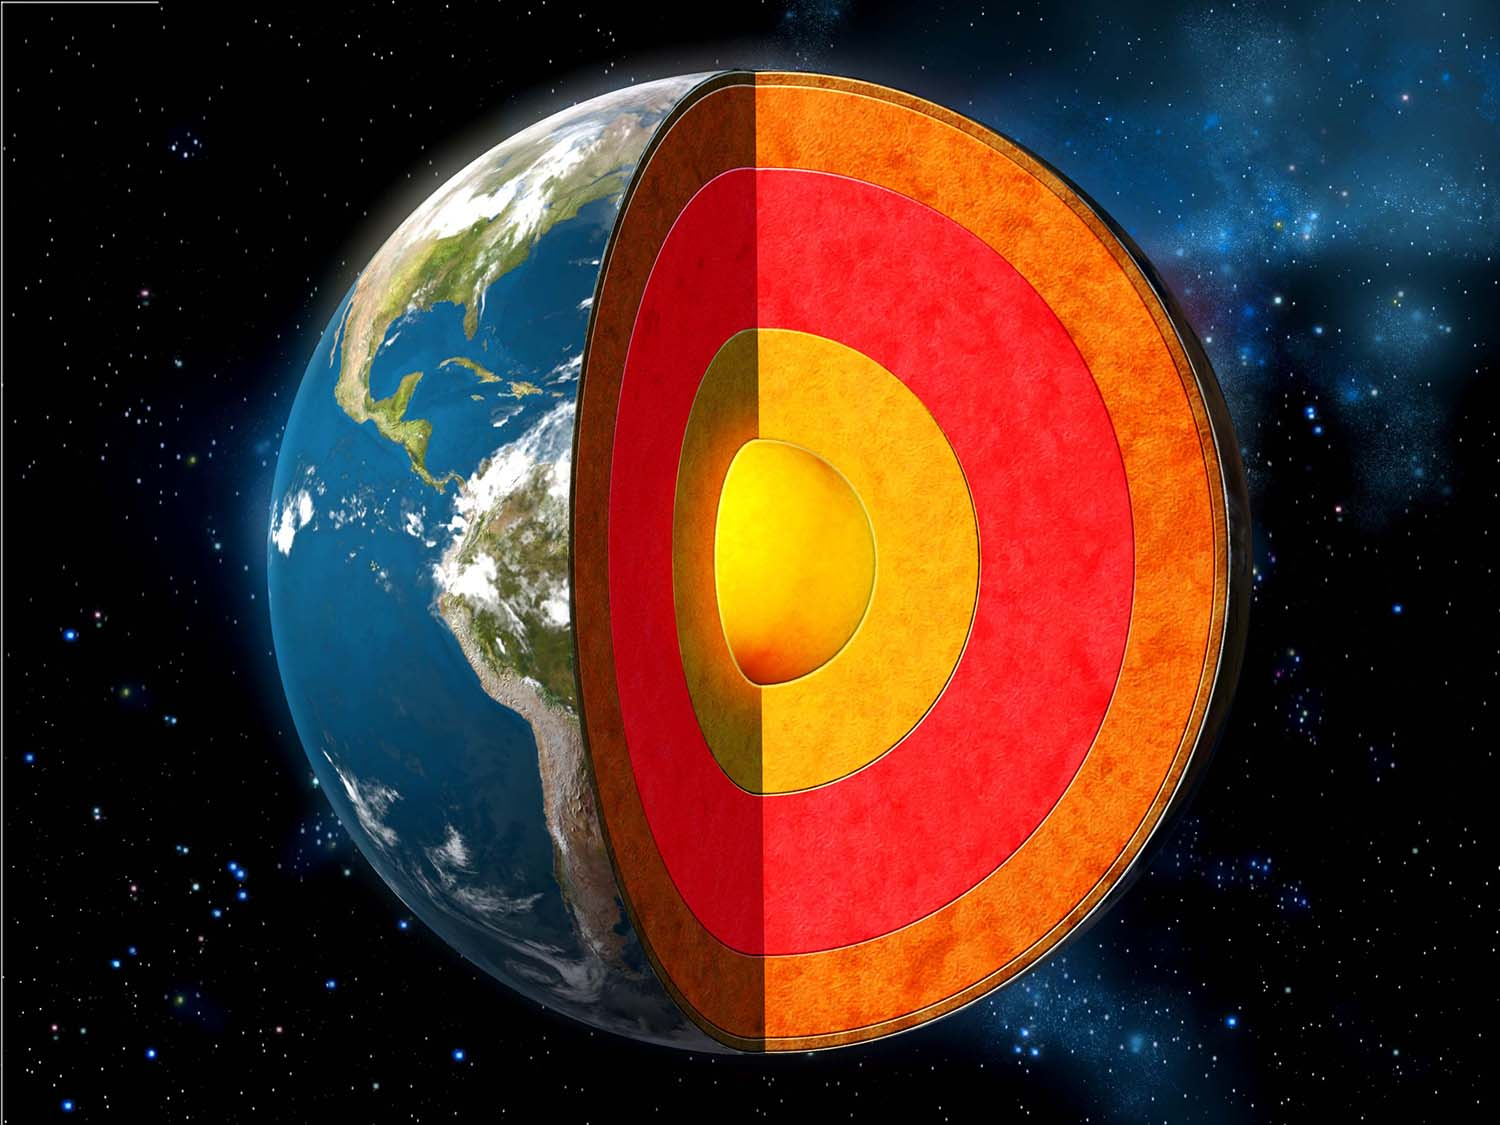 Illustration of earth cross section showing its internal structure